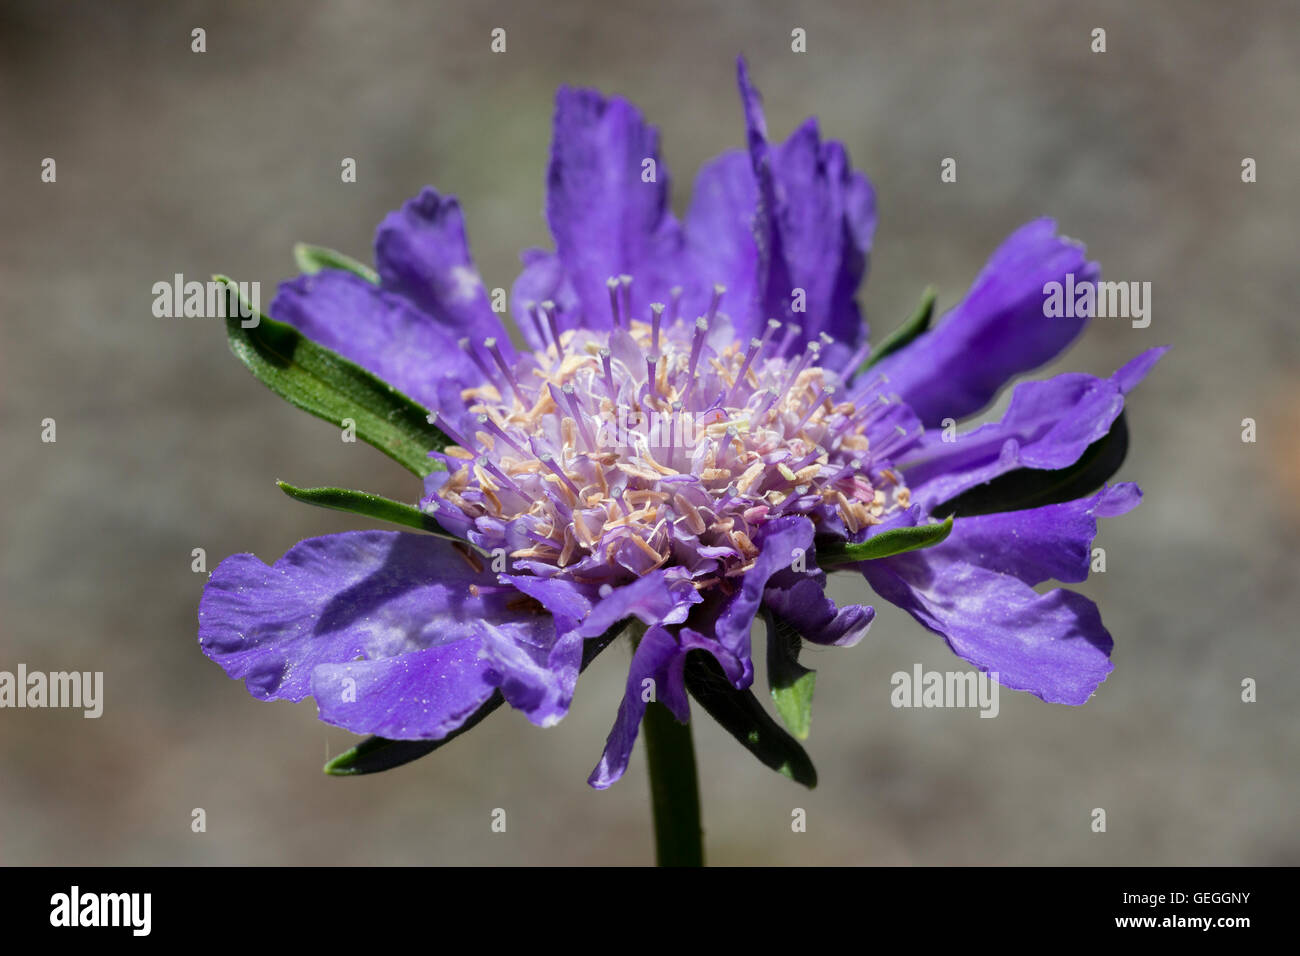 Large blue scabious flower of the hardy perennial, Scabiosa caucasica 'Fama Deep Blue' - Stock Image